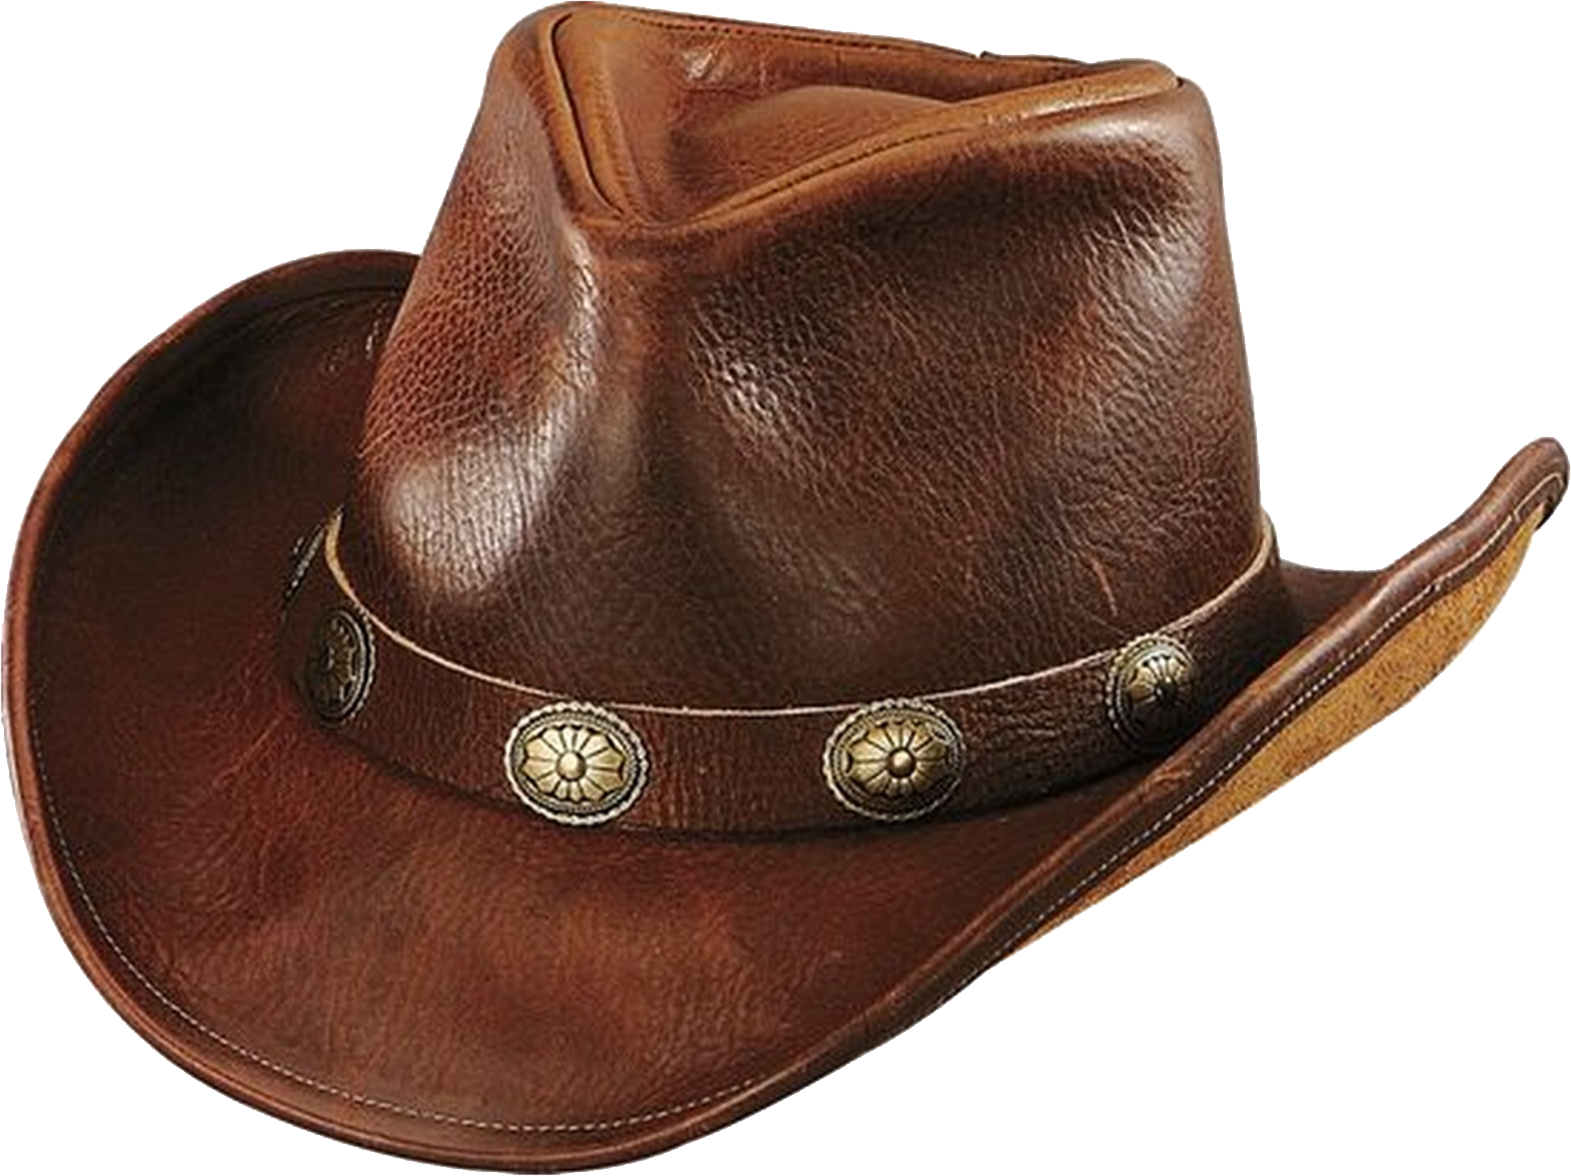 Leather Cowboy Hat PNG Free Images.